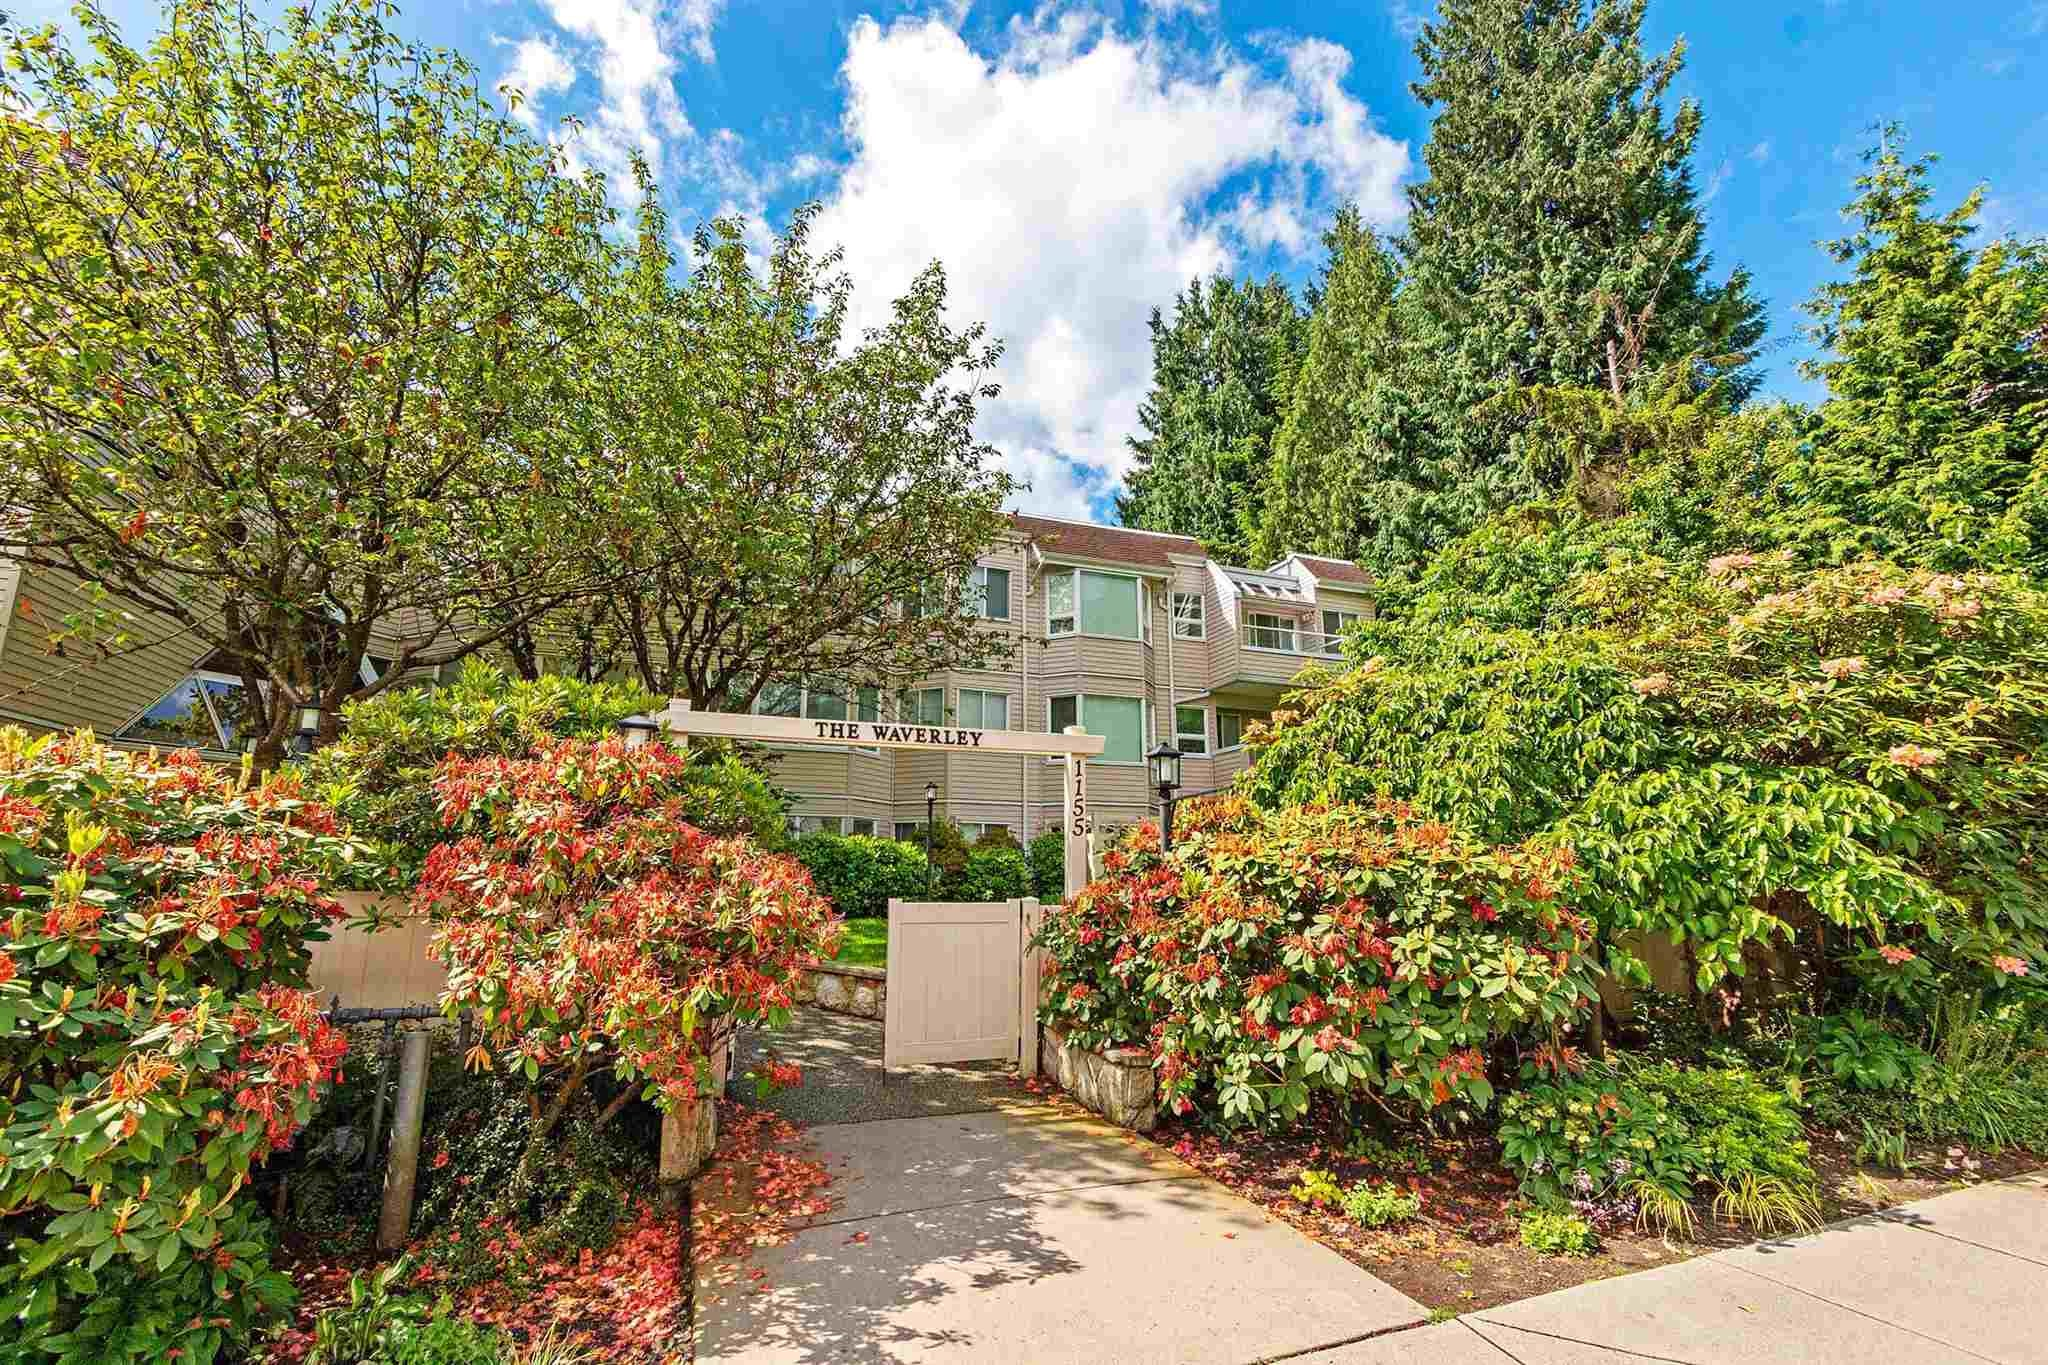 207 1155 ROSS ROAD - Lynn Valley Apartment/Condo for sale, 1 Bedroom (R2594853) - #1